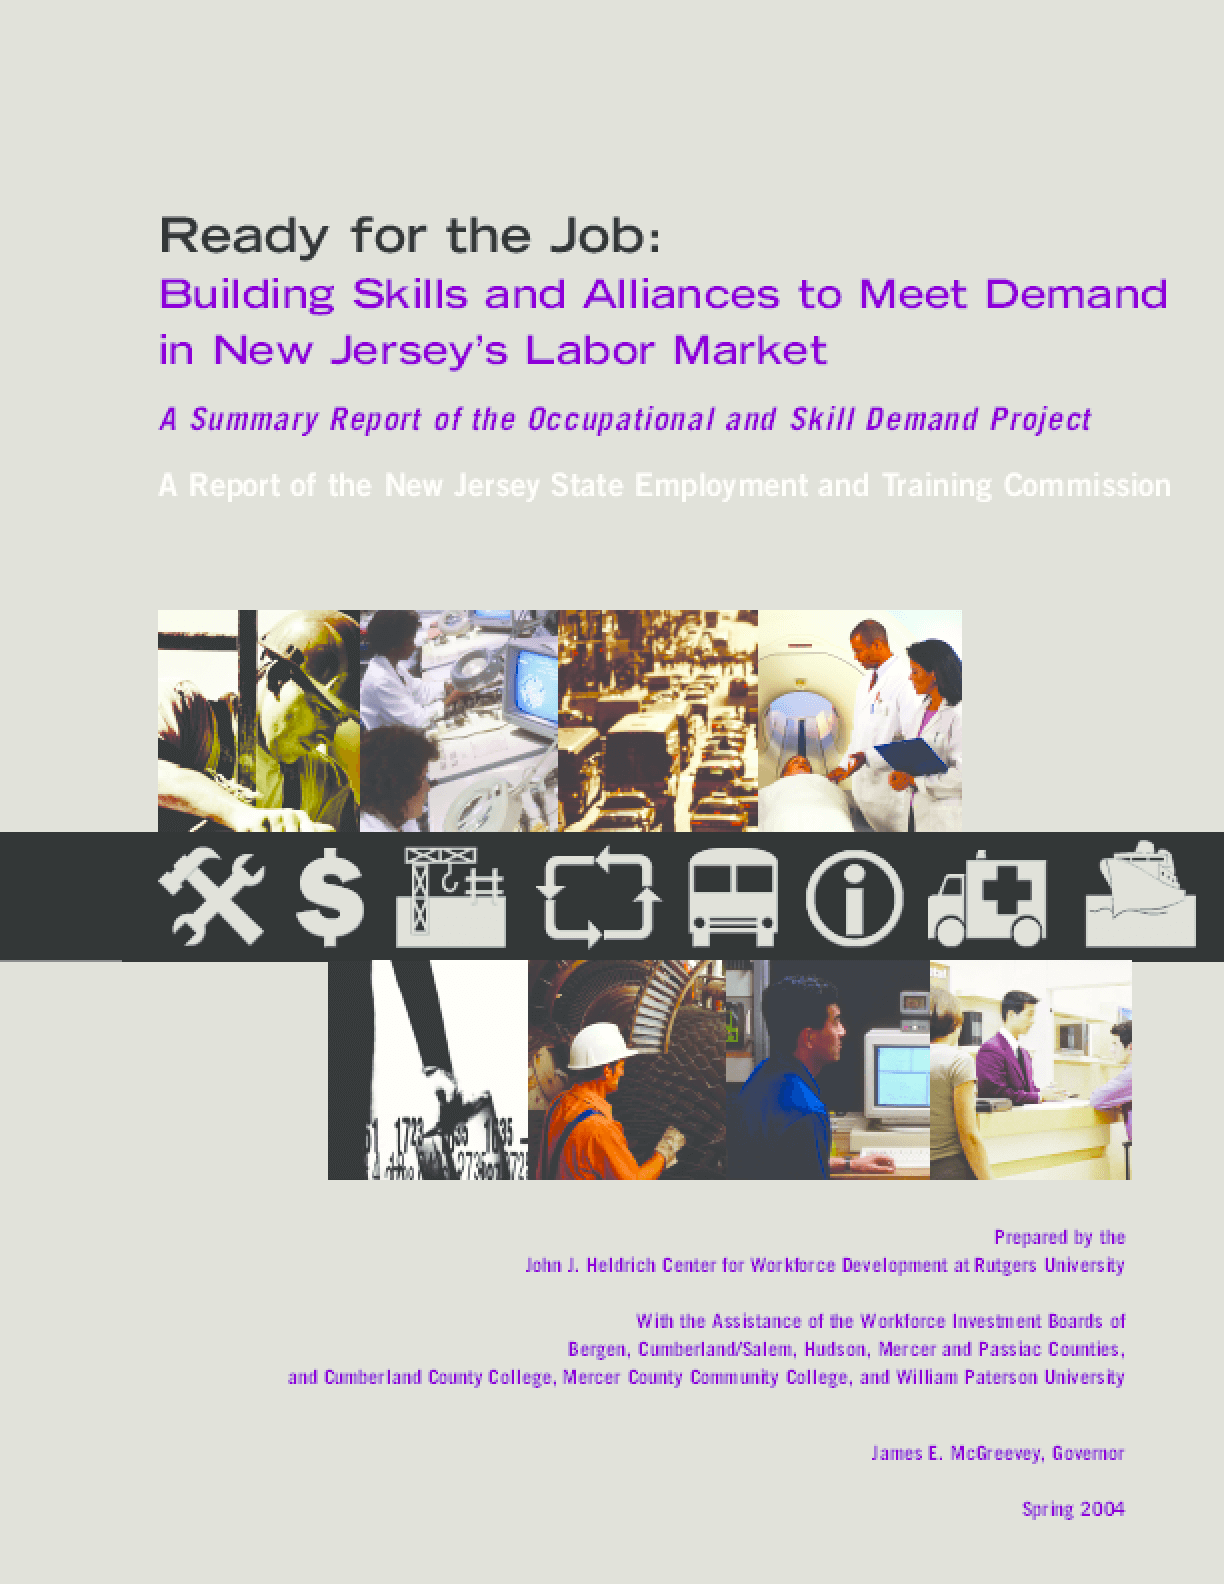 Building Skills and Alliances to Meet Demand in New Jersey's Labor Market